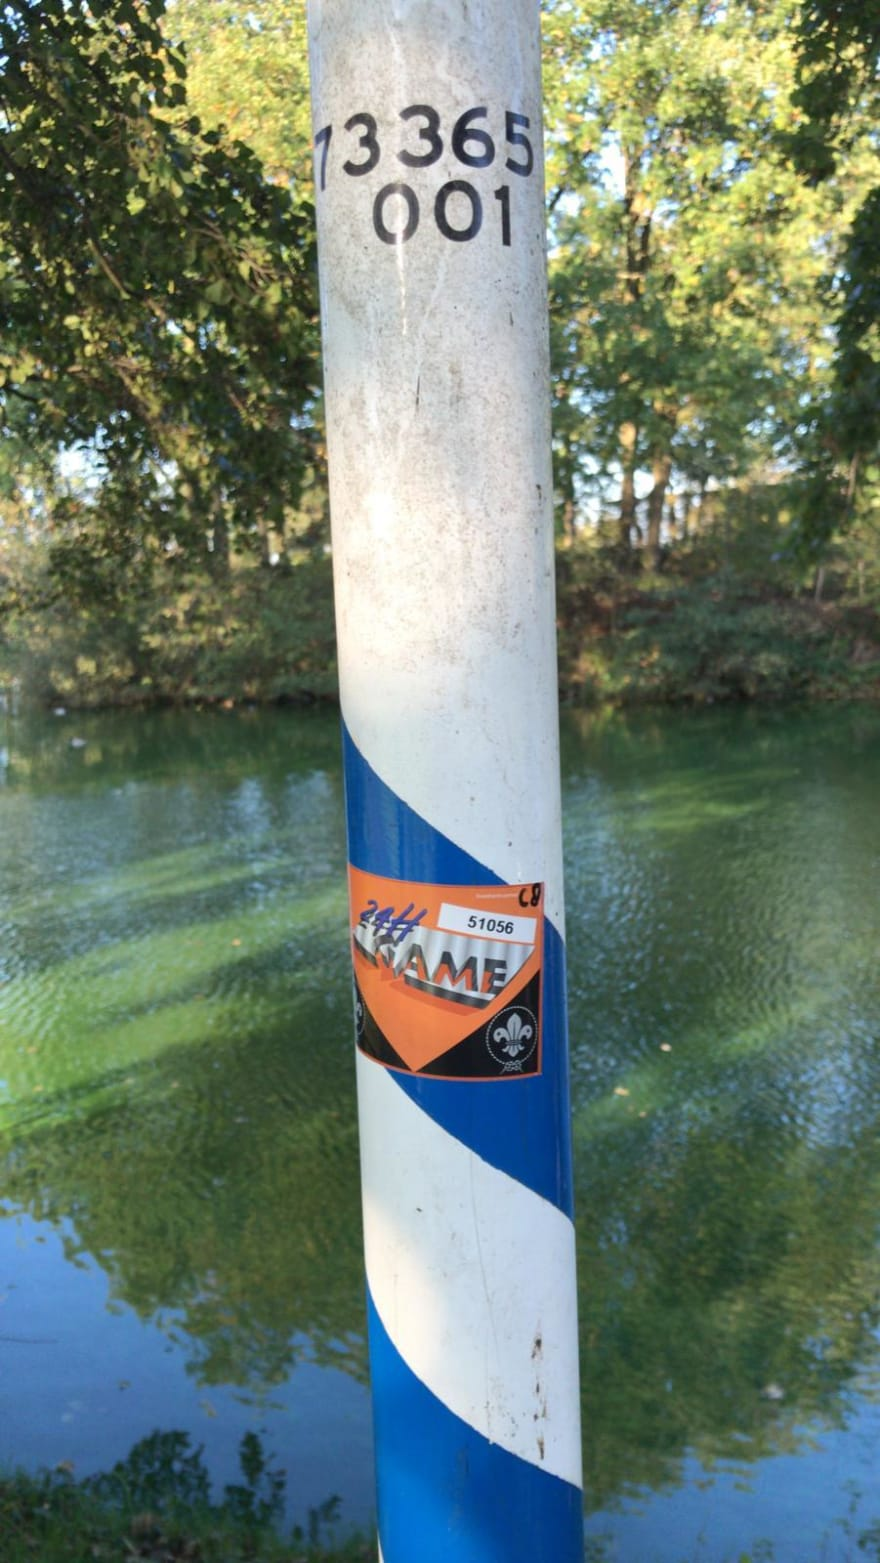 sticker on pole